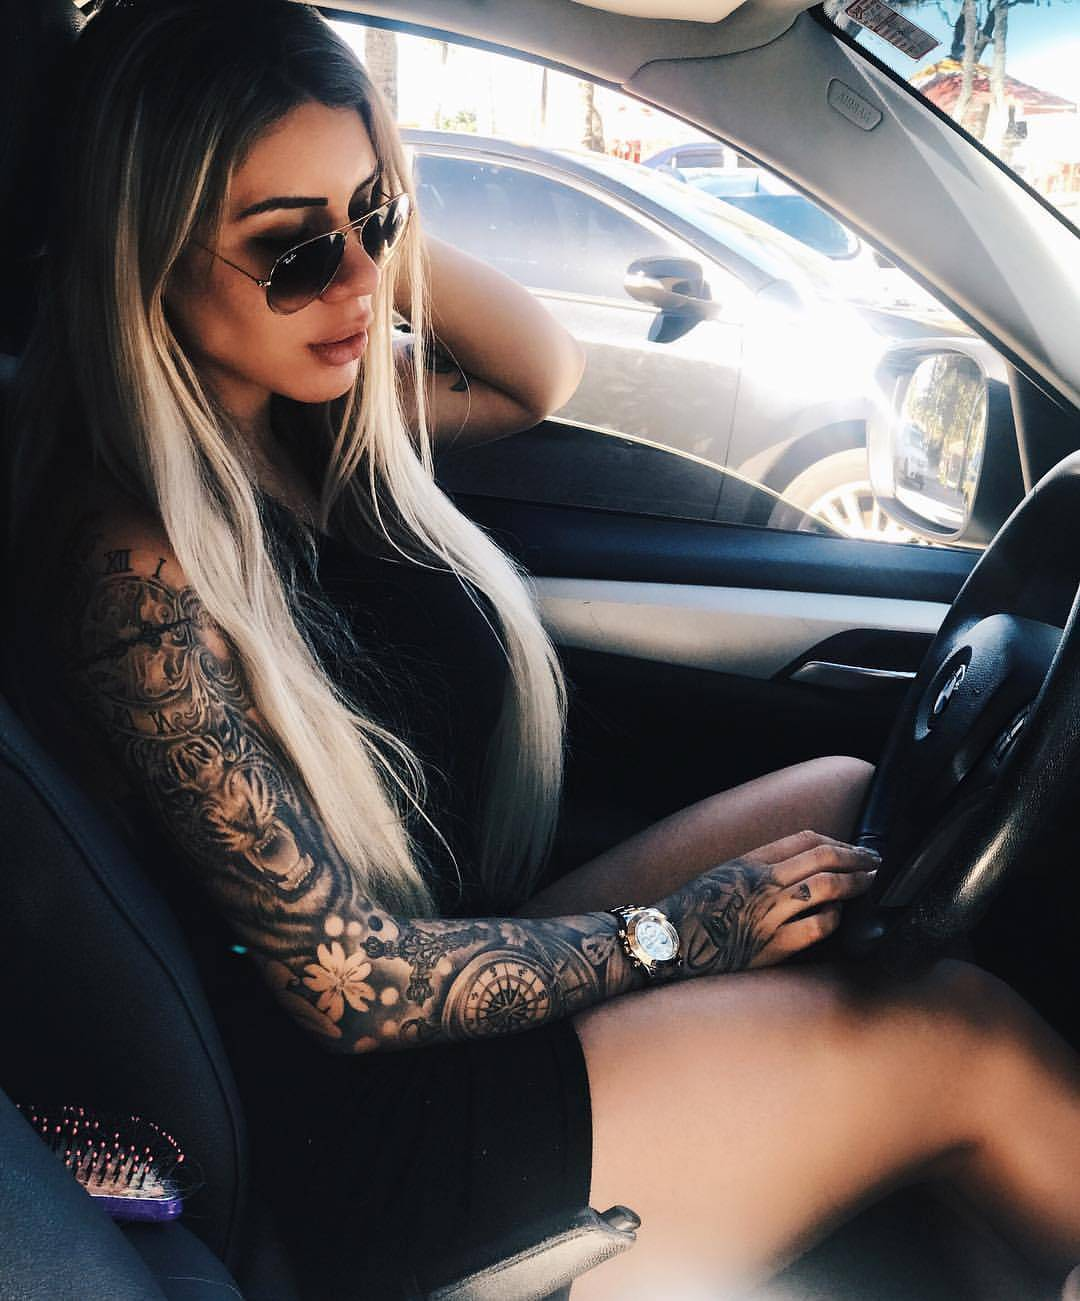 hammered sleeves at a beautiful girl, a photo behind the wheel